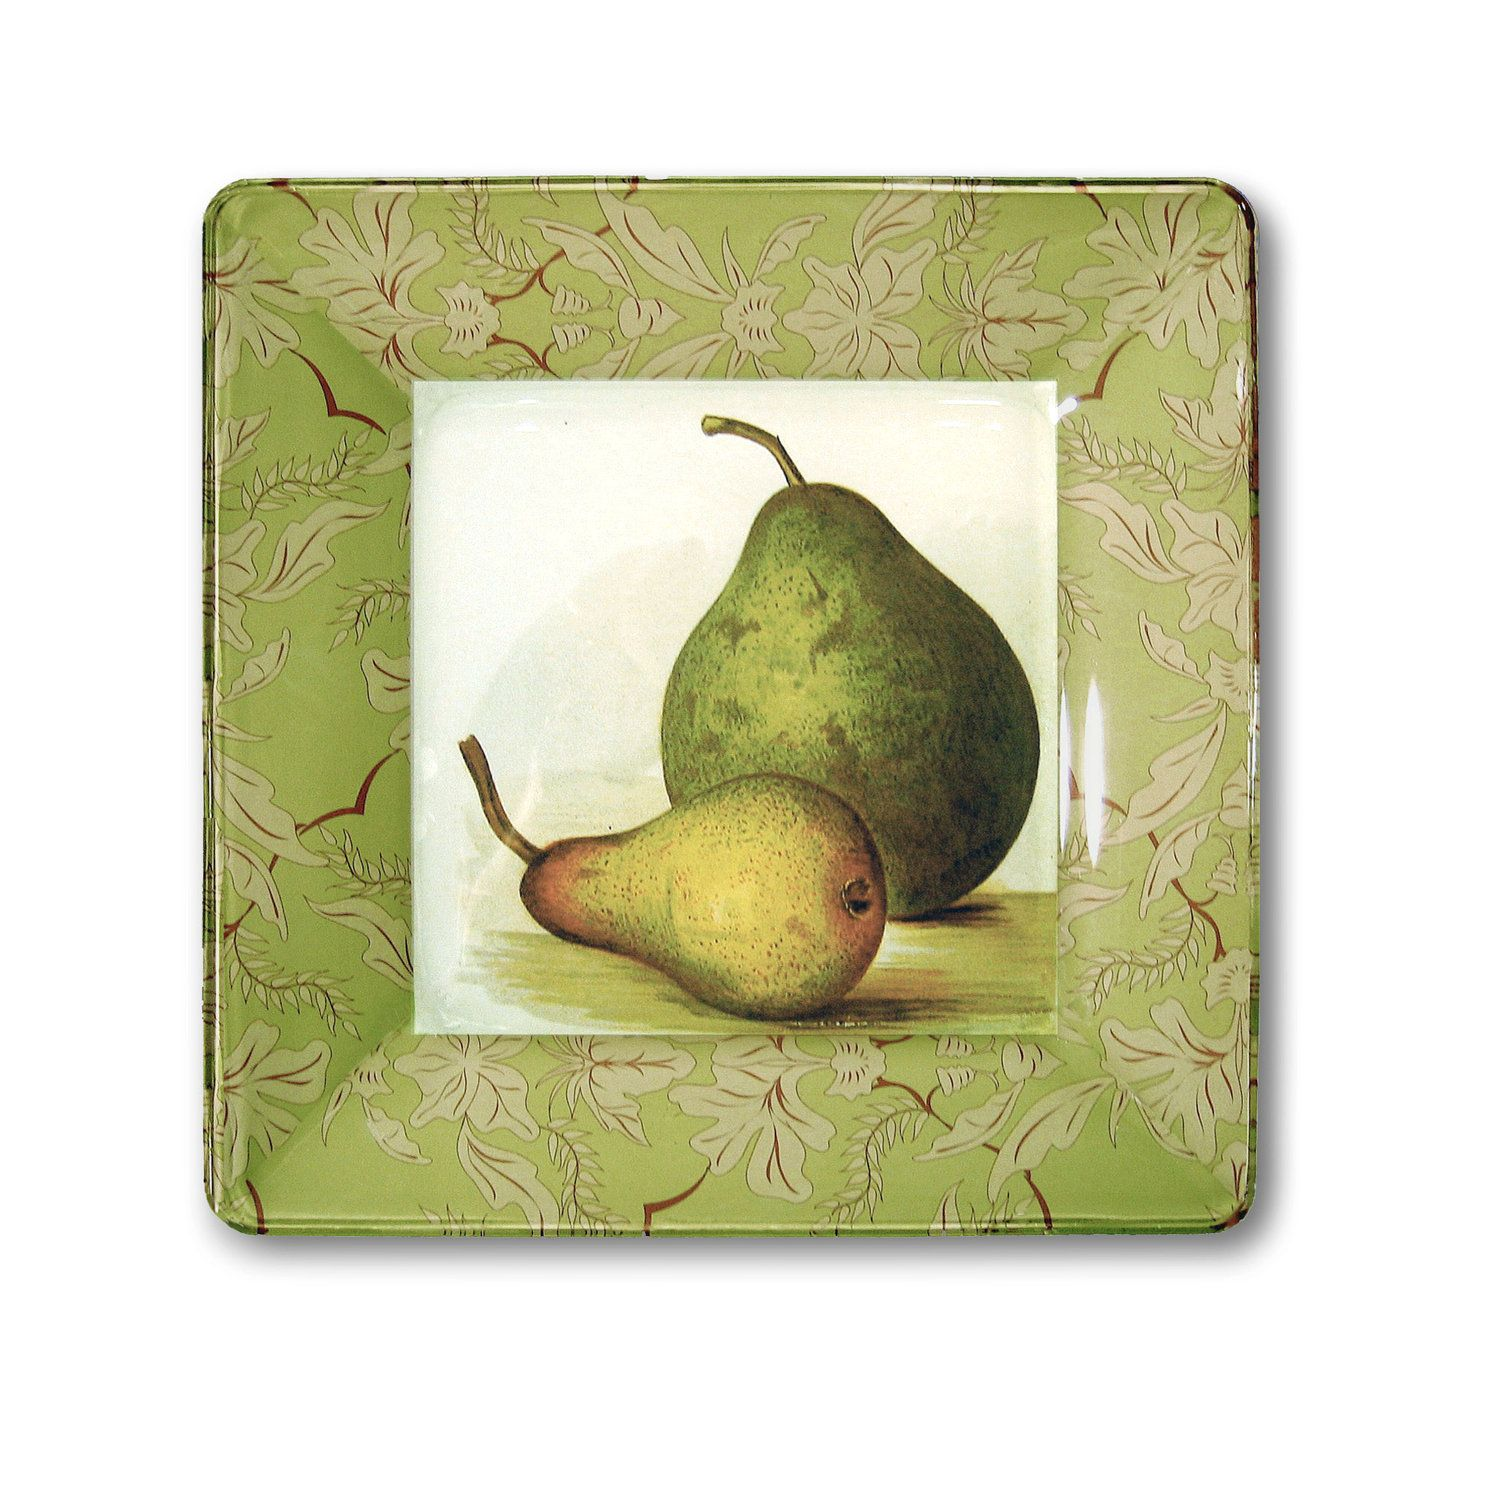 Pears hanging plate kitchen decor botanical print decoupage plate ...